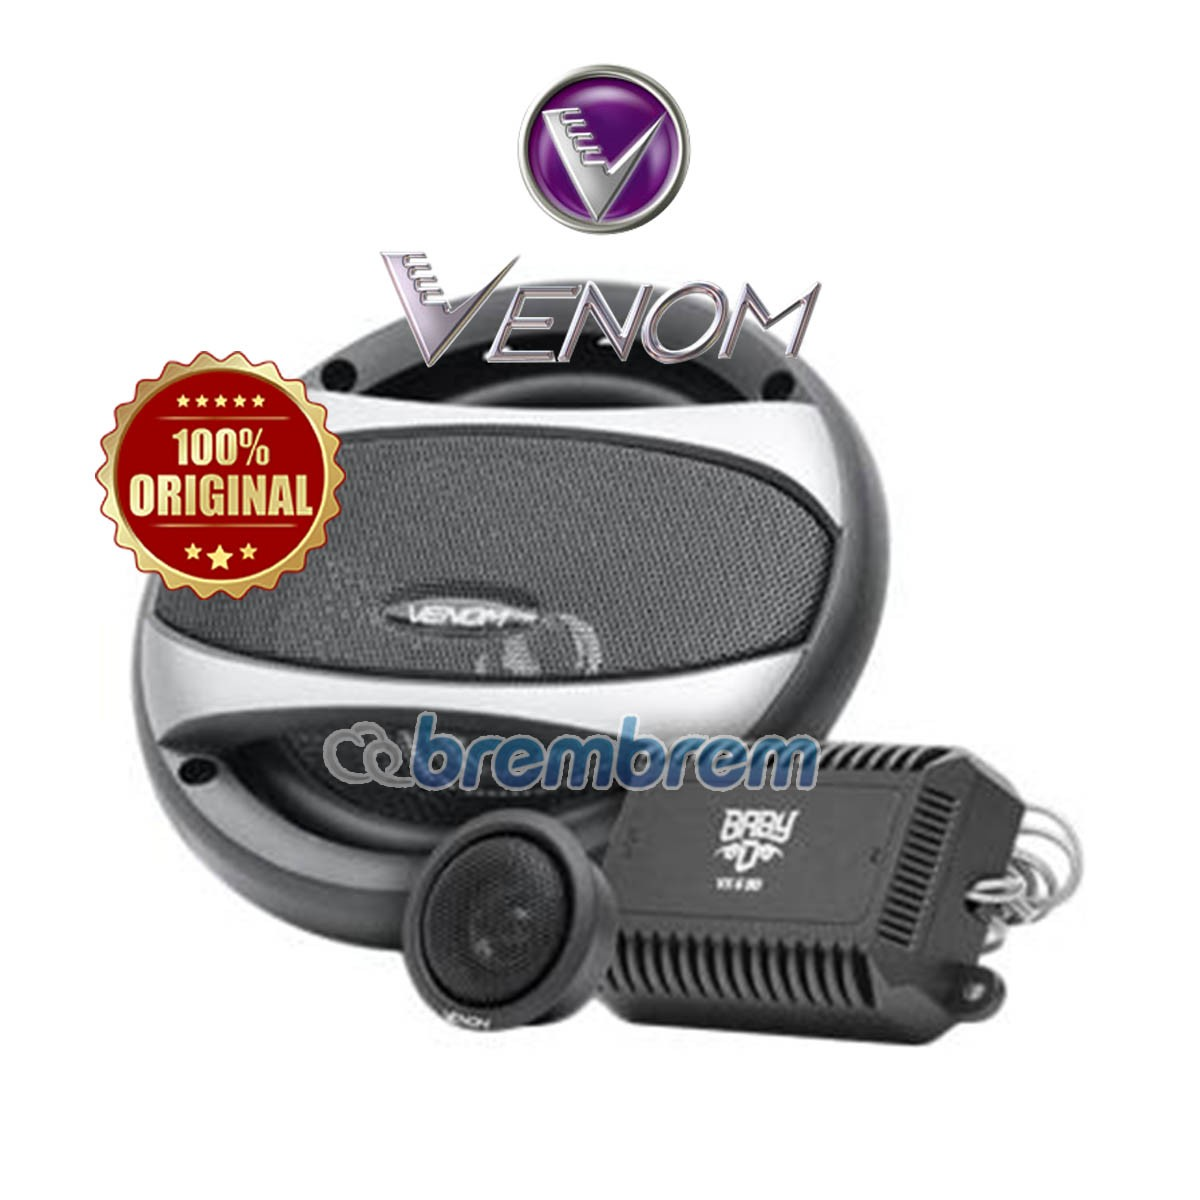 VENOM DIABLO SERIES VX6BD - SPEAKER 2 WAY